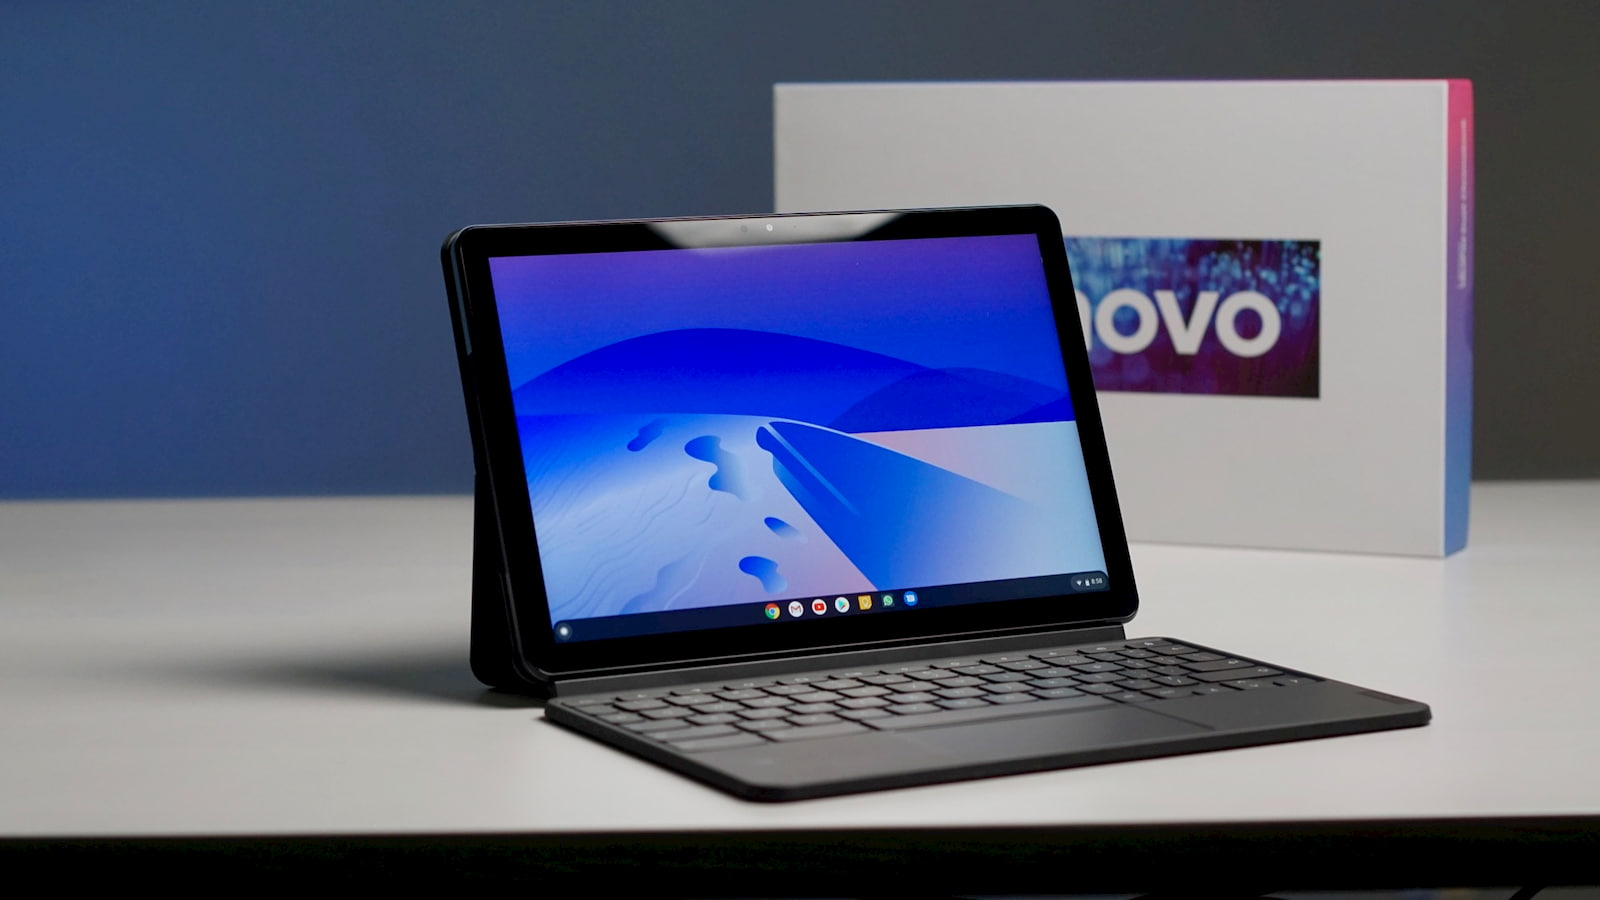 [Updated] Guess who's back? Lenovo's Chromebook Duet tablet is in stock at Best Buy